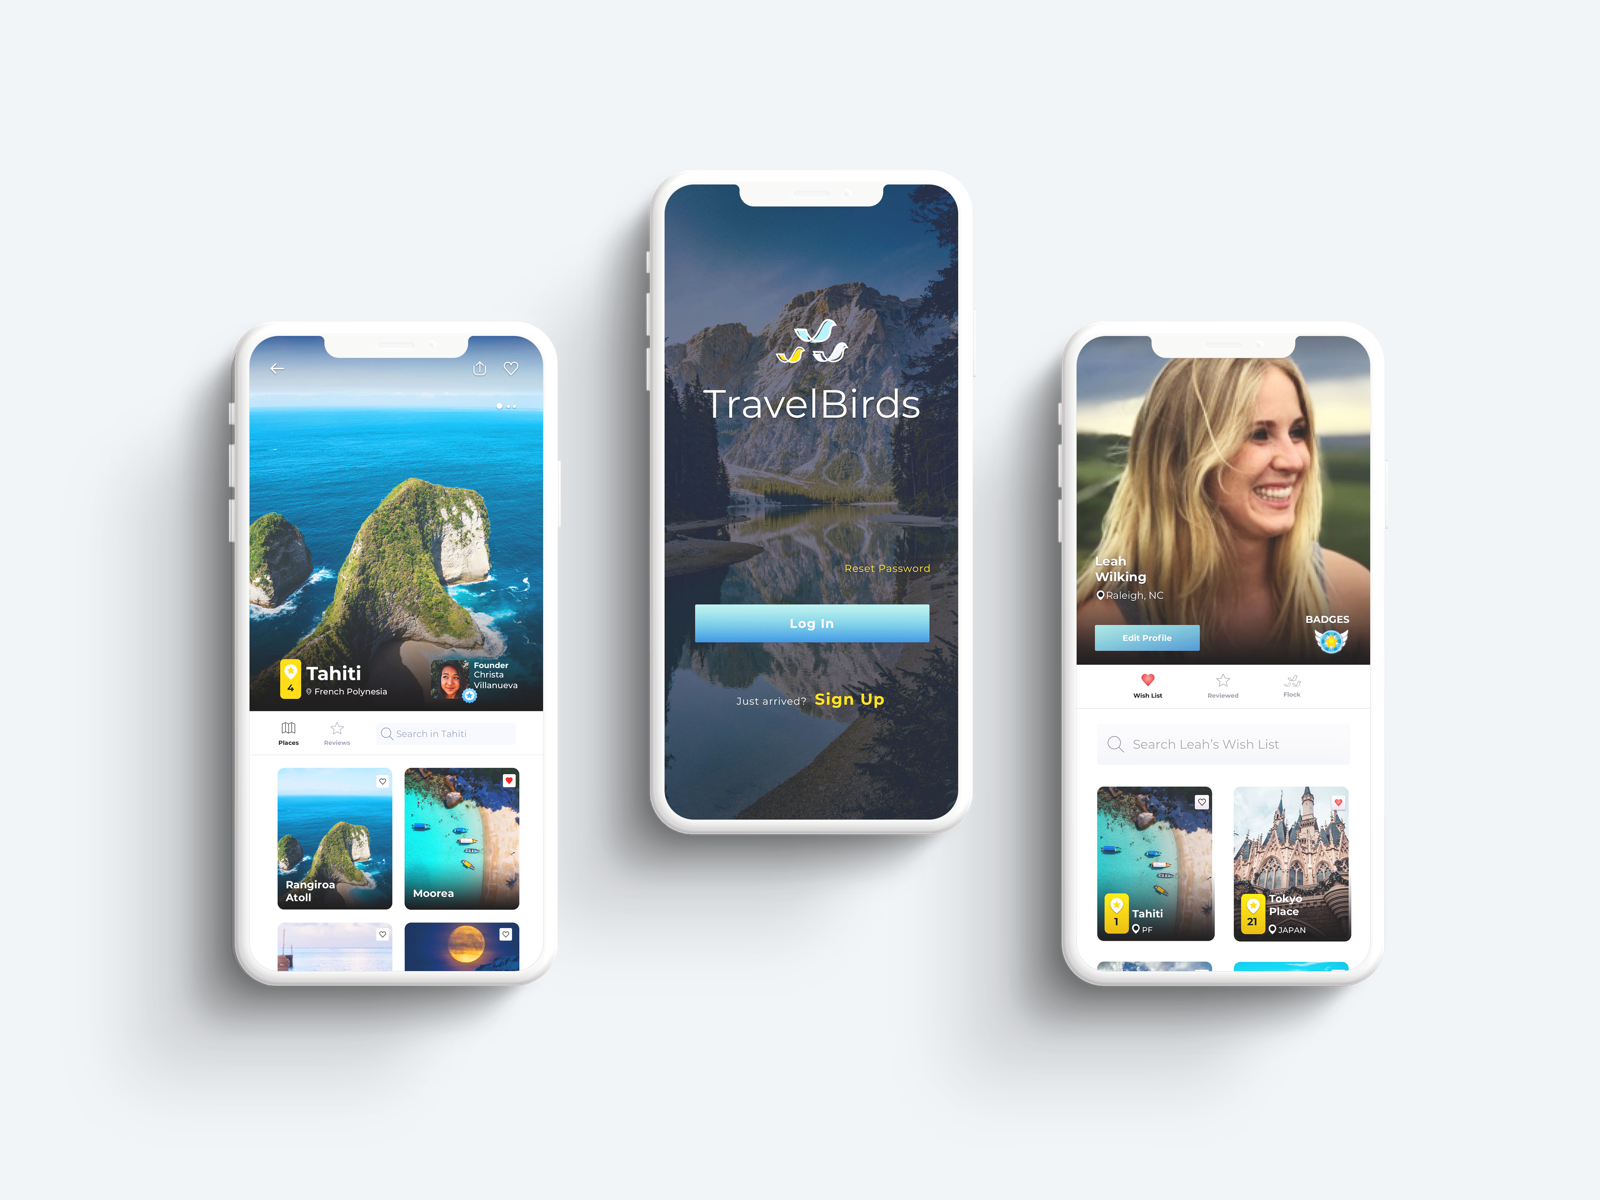 We conducted research, designed user flows, and built technical architecture to create the next iOS app that is ready to disrupt the travel industry.